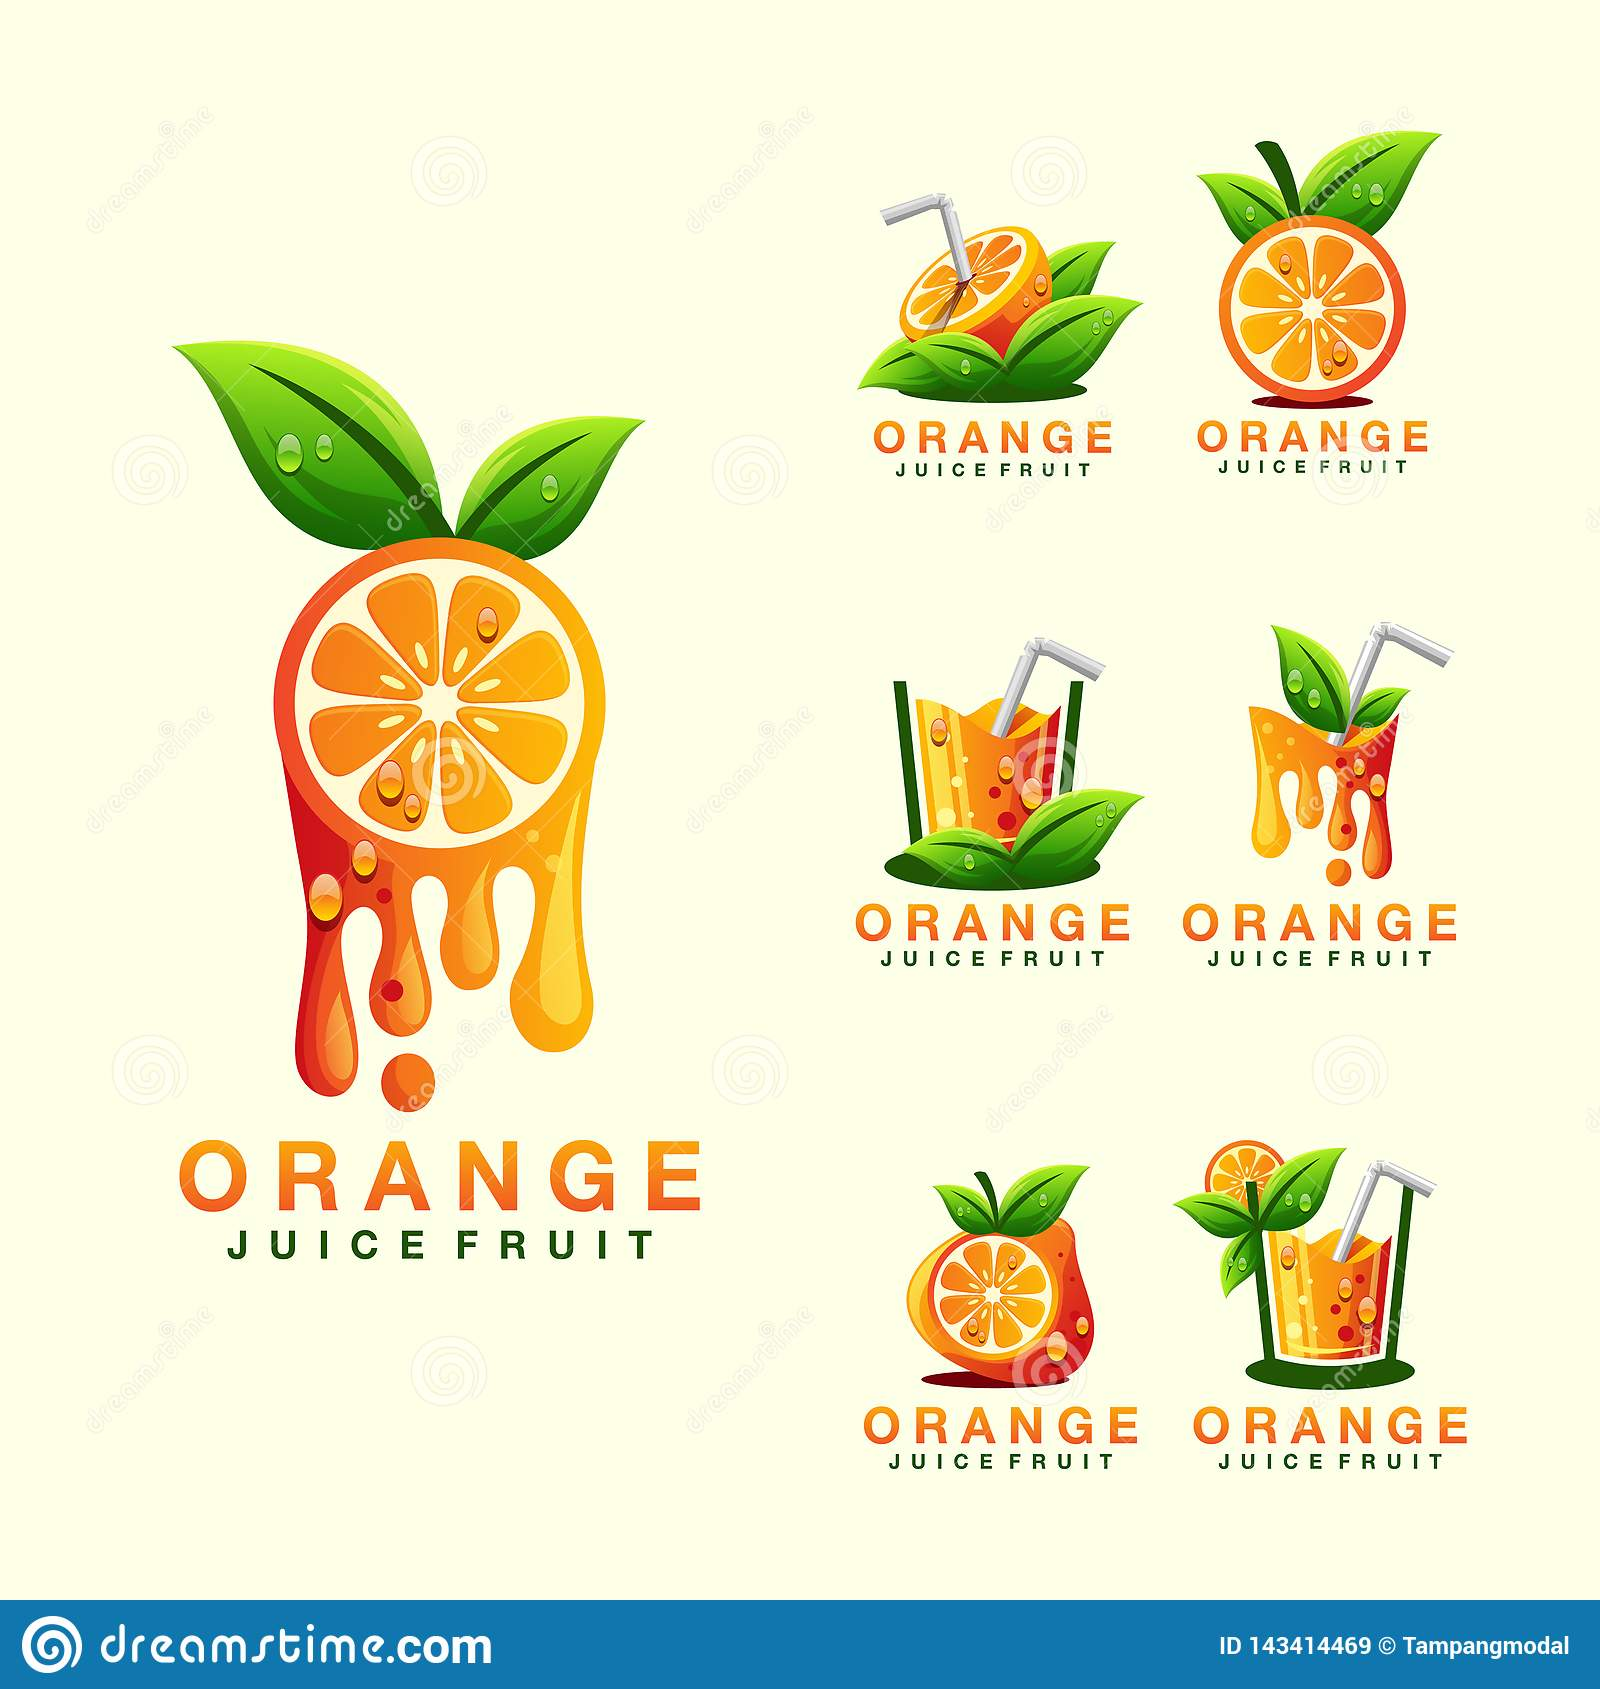 orange juice logo design ready for use stock vector illustration of diet leaf 143414469 https www dreamstime com orange juice logo image143414469